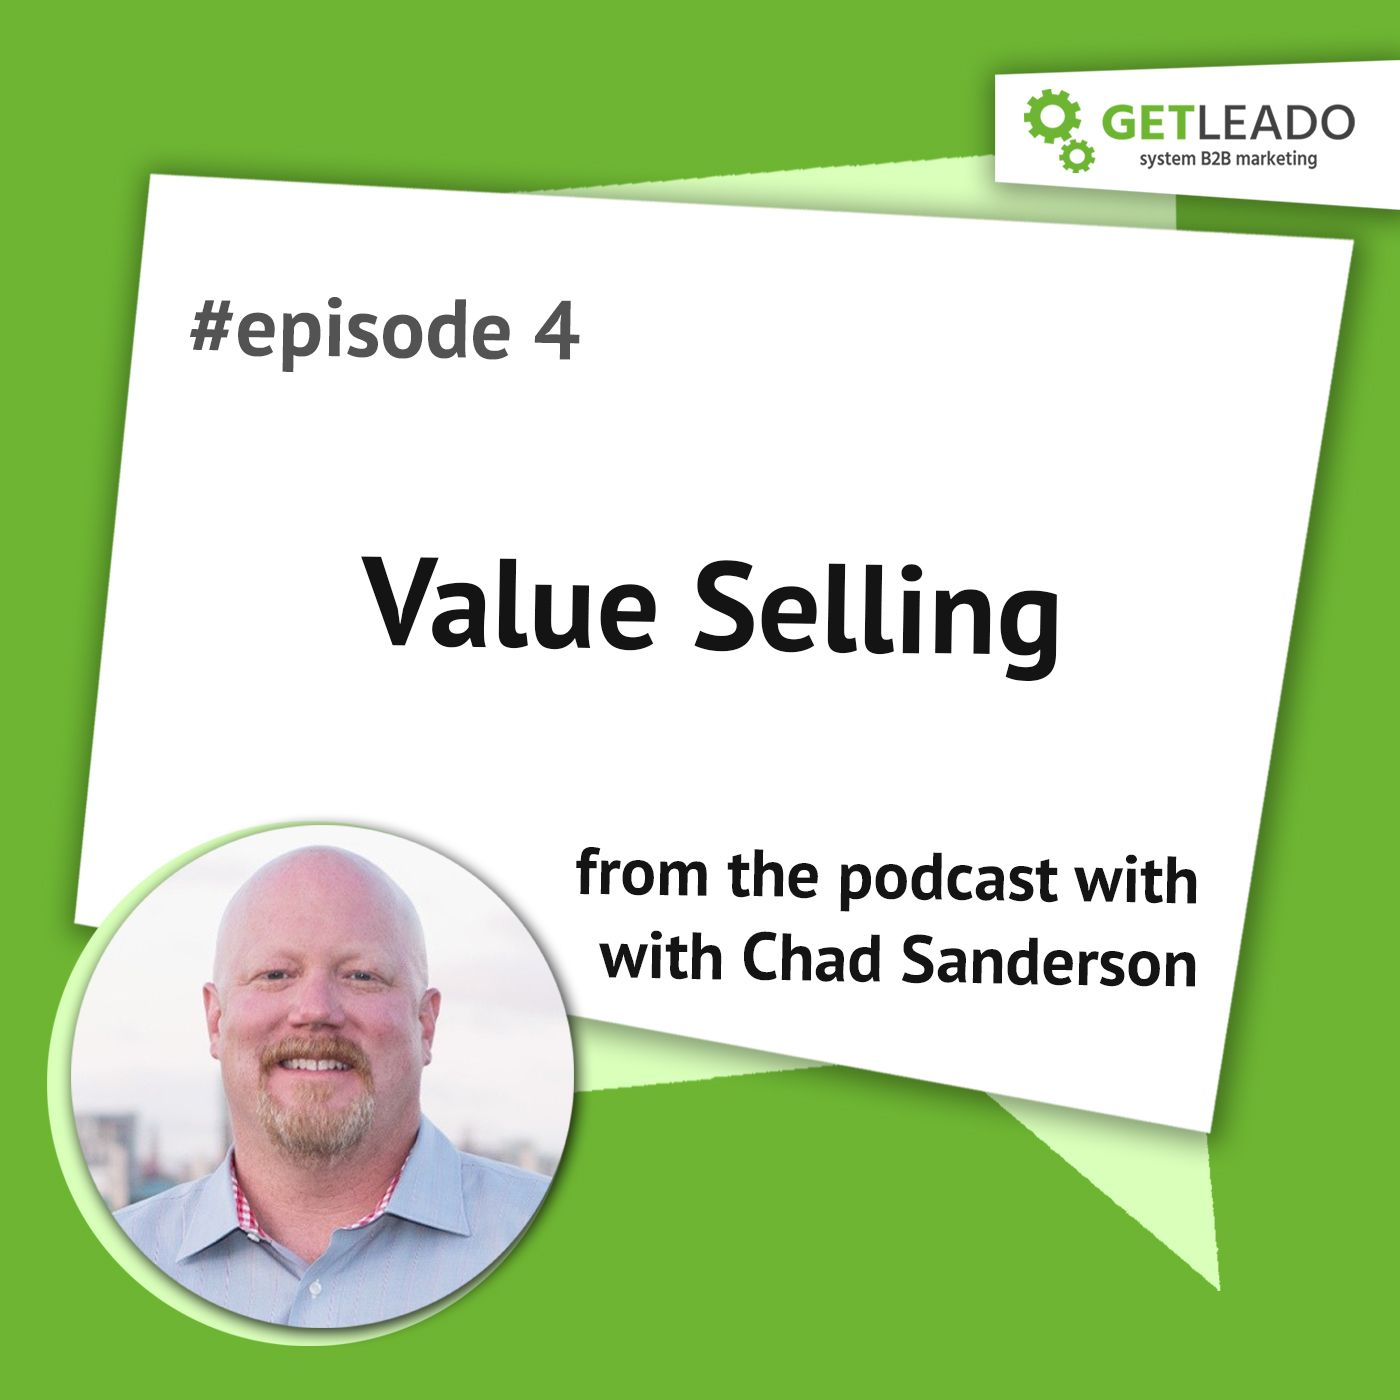 Episode 4. Value Selling with Chad Senderson